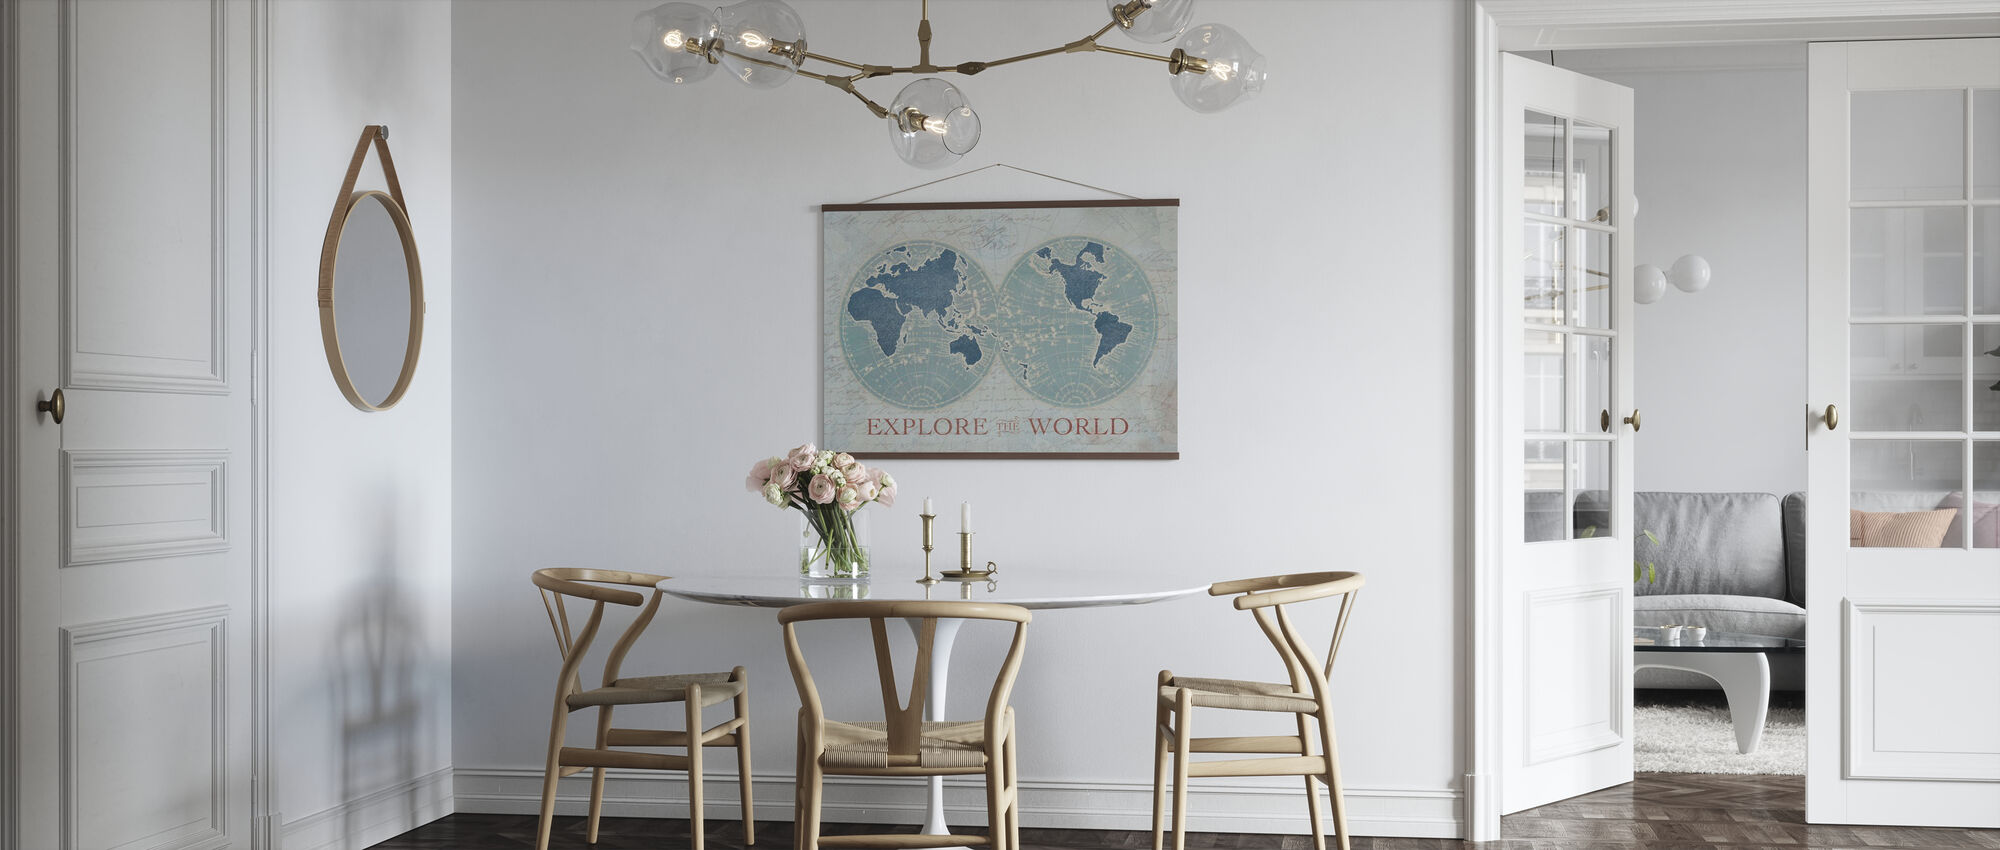 Explore the World 2 - Poster - Kitchen